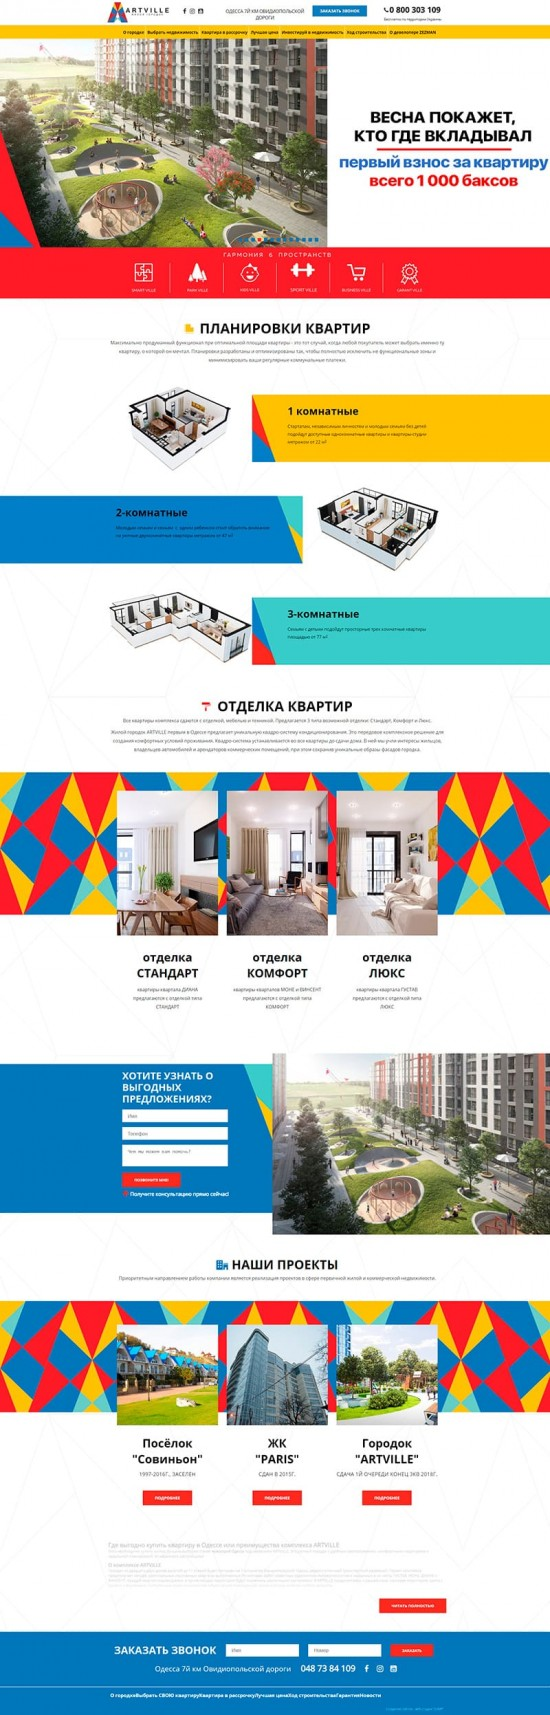 Corporate website for «ArtVille» housing complex 2 DESCTOP - Jump.team